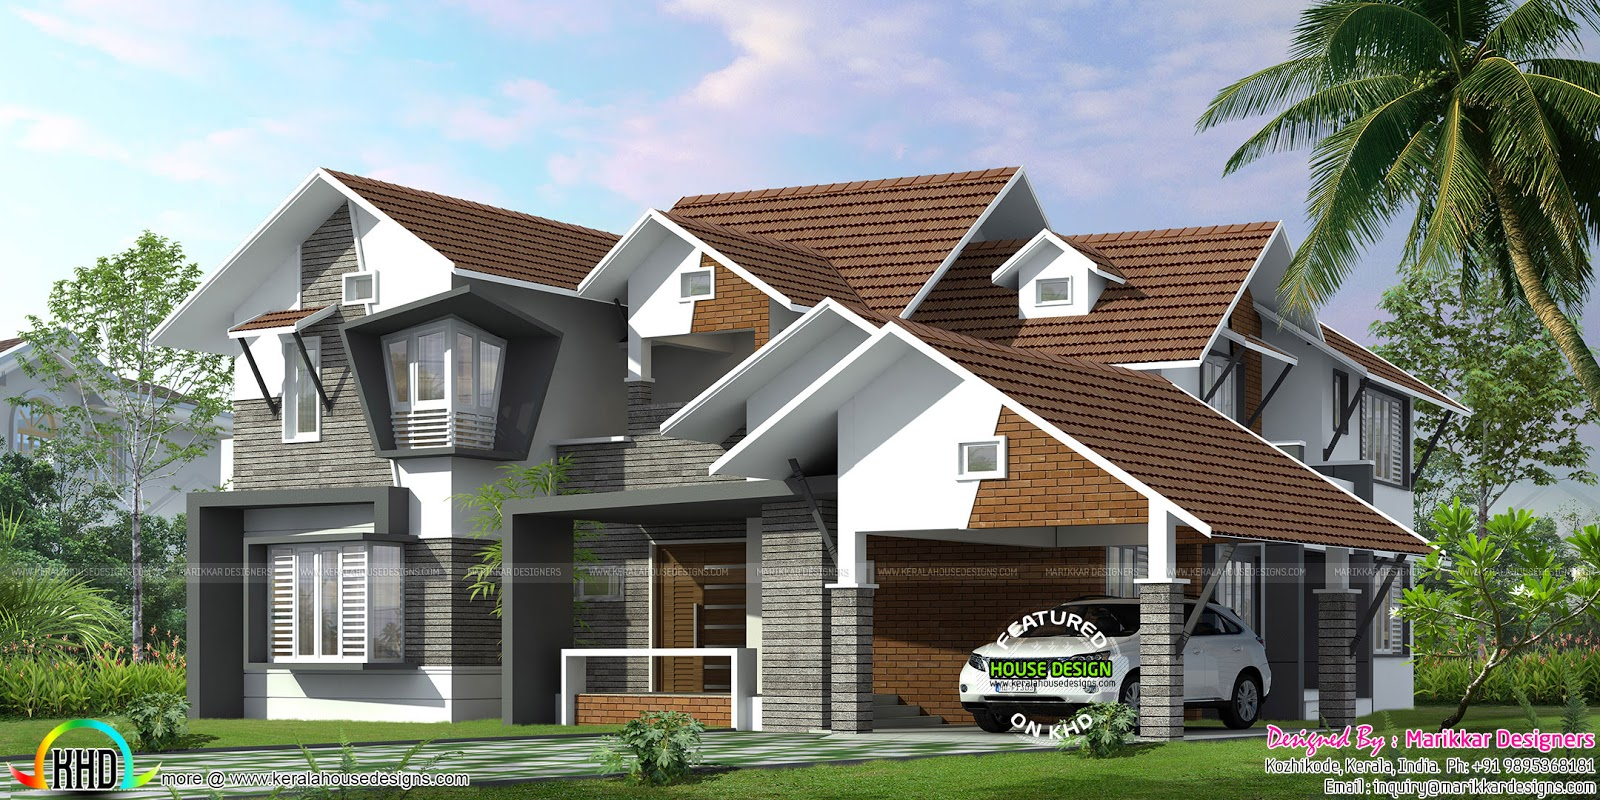 Sloping roof ultra modern home kerala home design and for Slope house plans designs